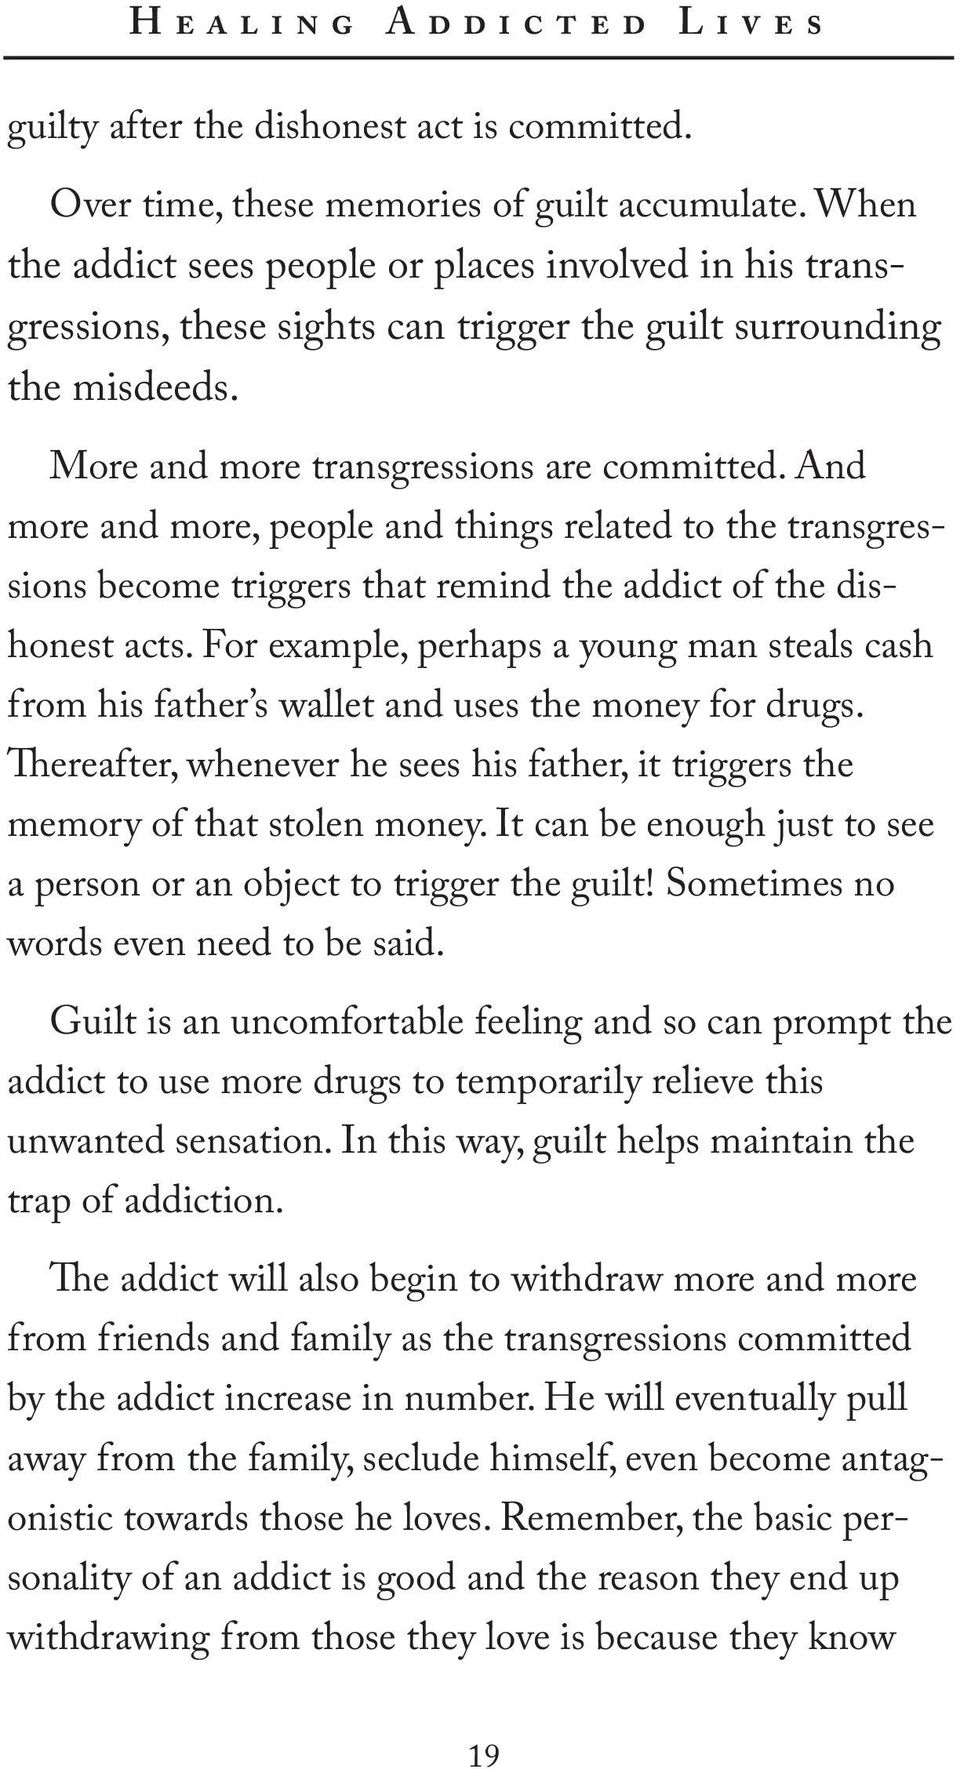 And more and more, people and things related to the transgressions become triggers that remind the addict of the dishonest acts.